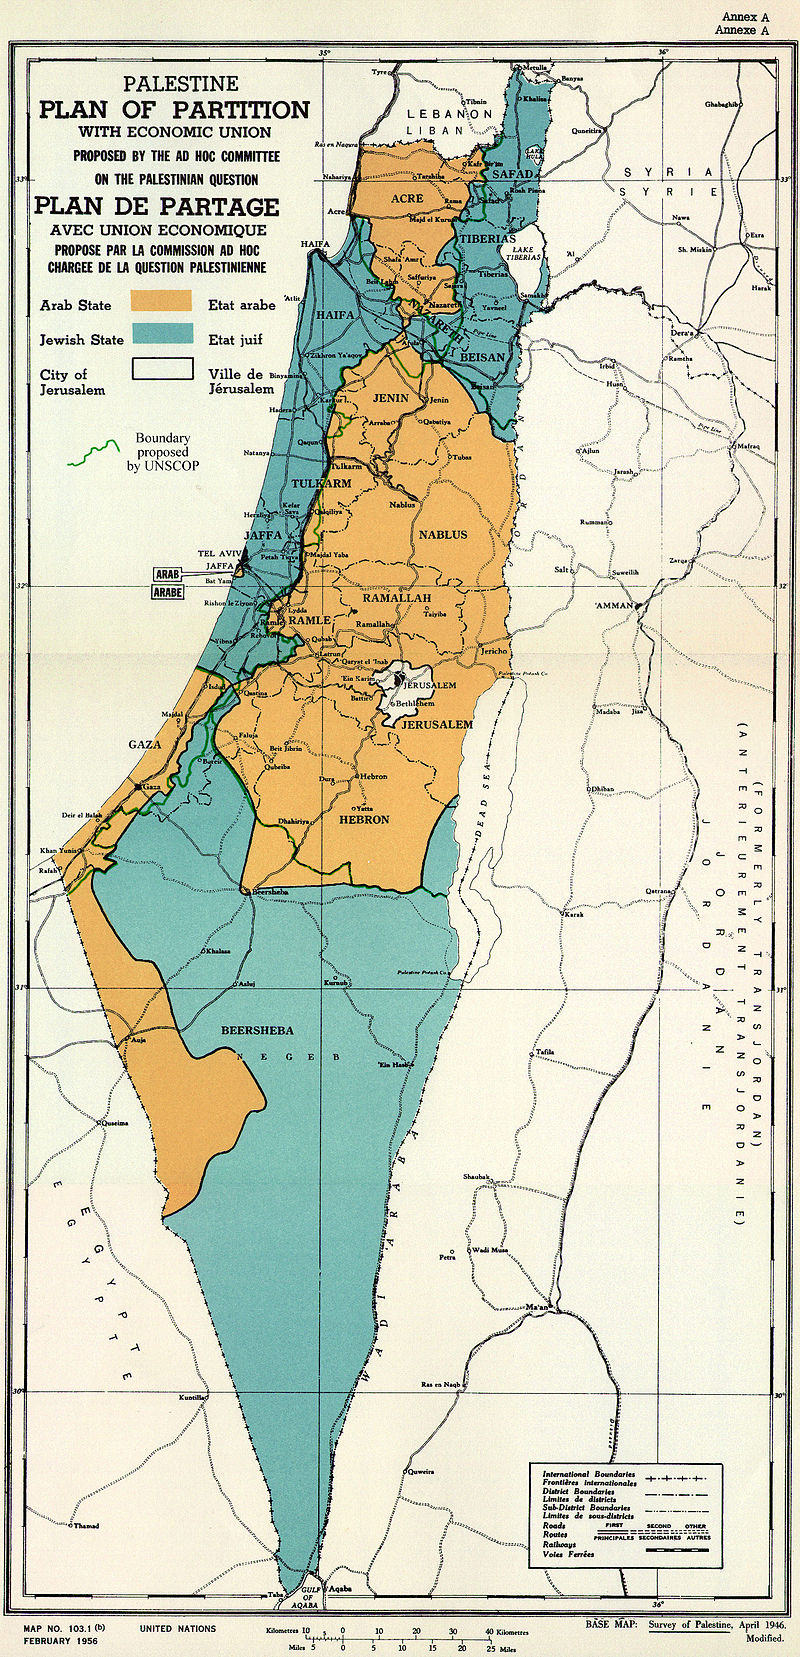 Map of UN Partition Plan for Palestine, adopted 29 Nov 1947. (Wikimedia)